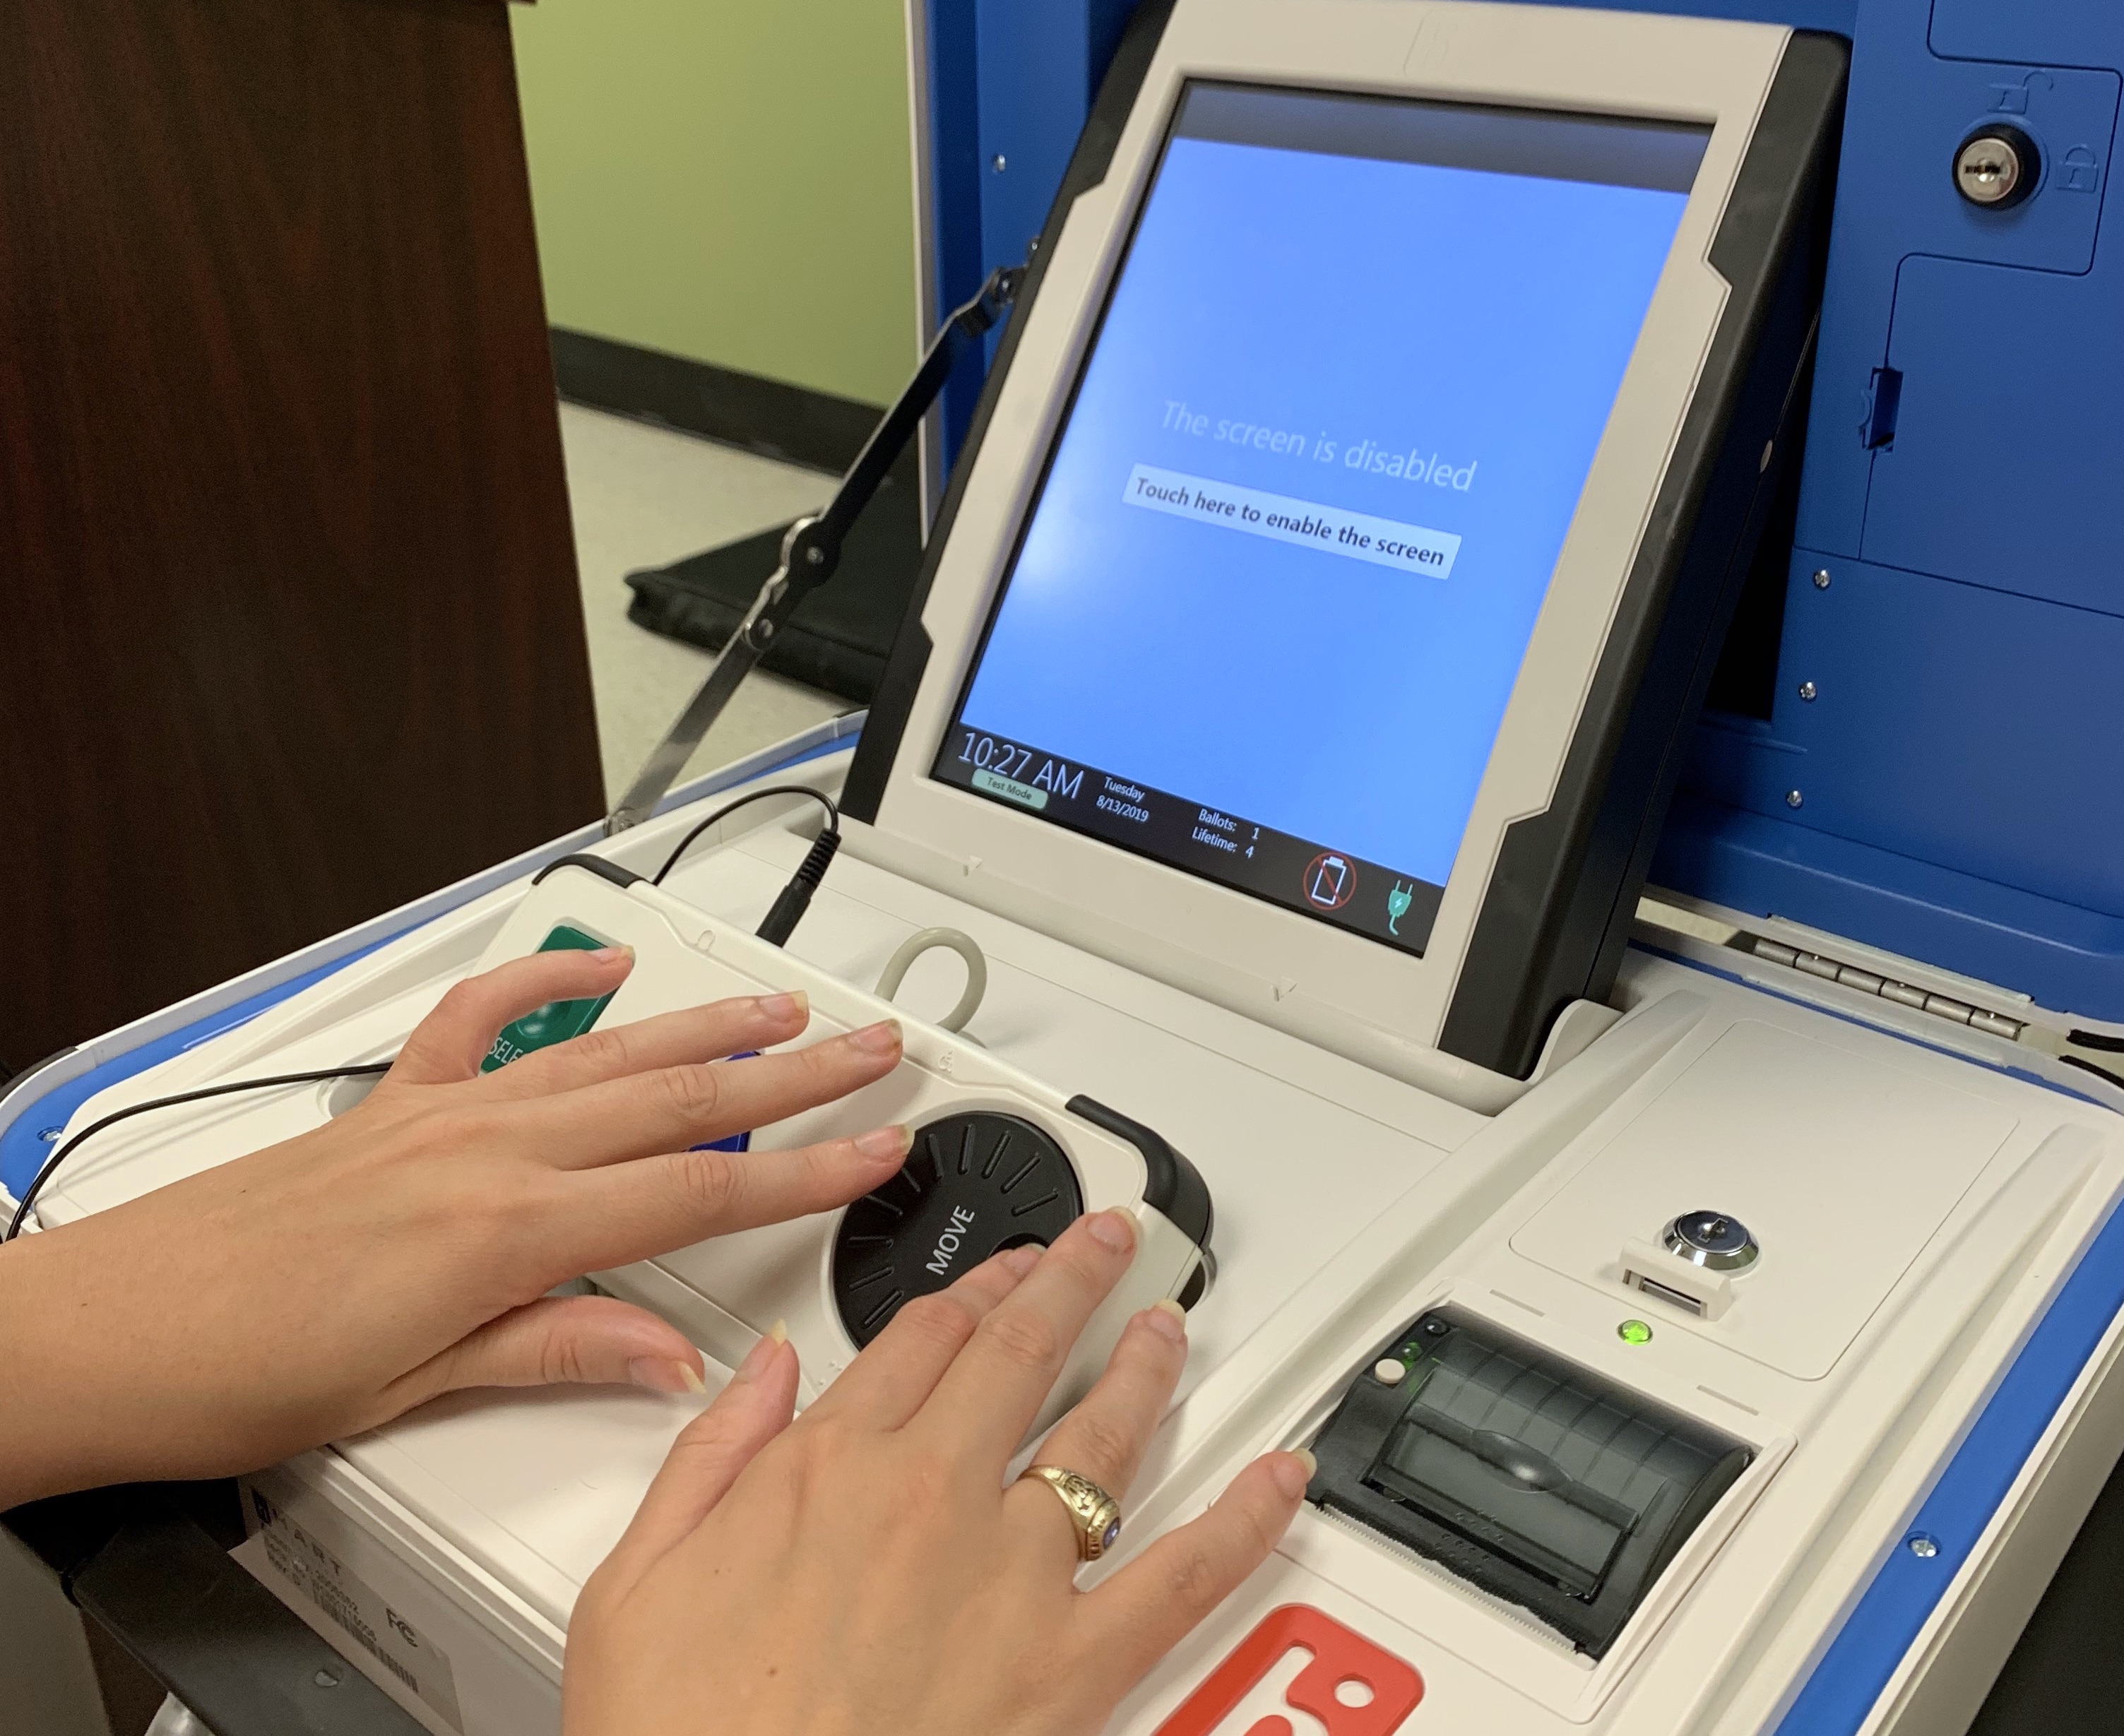 A Clovernook Center employee with visual impairment tests the new accessible voting machine at Clovernook Center.